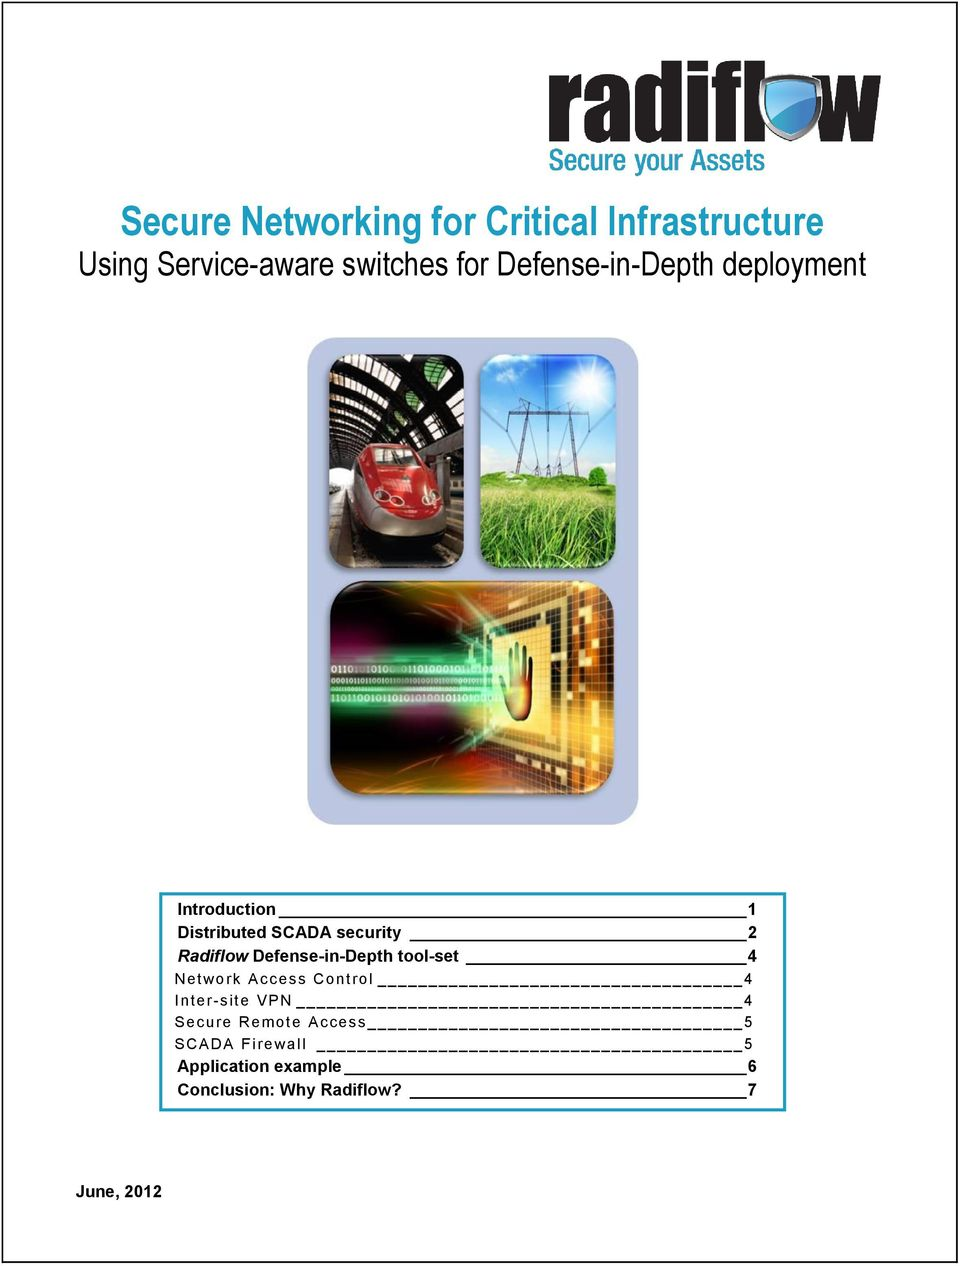 Defense-in-Depth tool-set 4 Network Access Control 4 Inter-site VPN 4 Secure